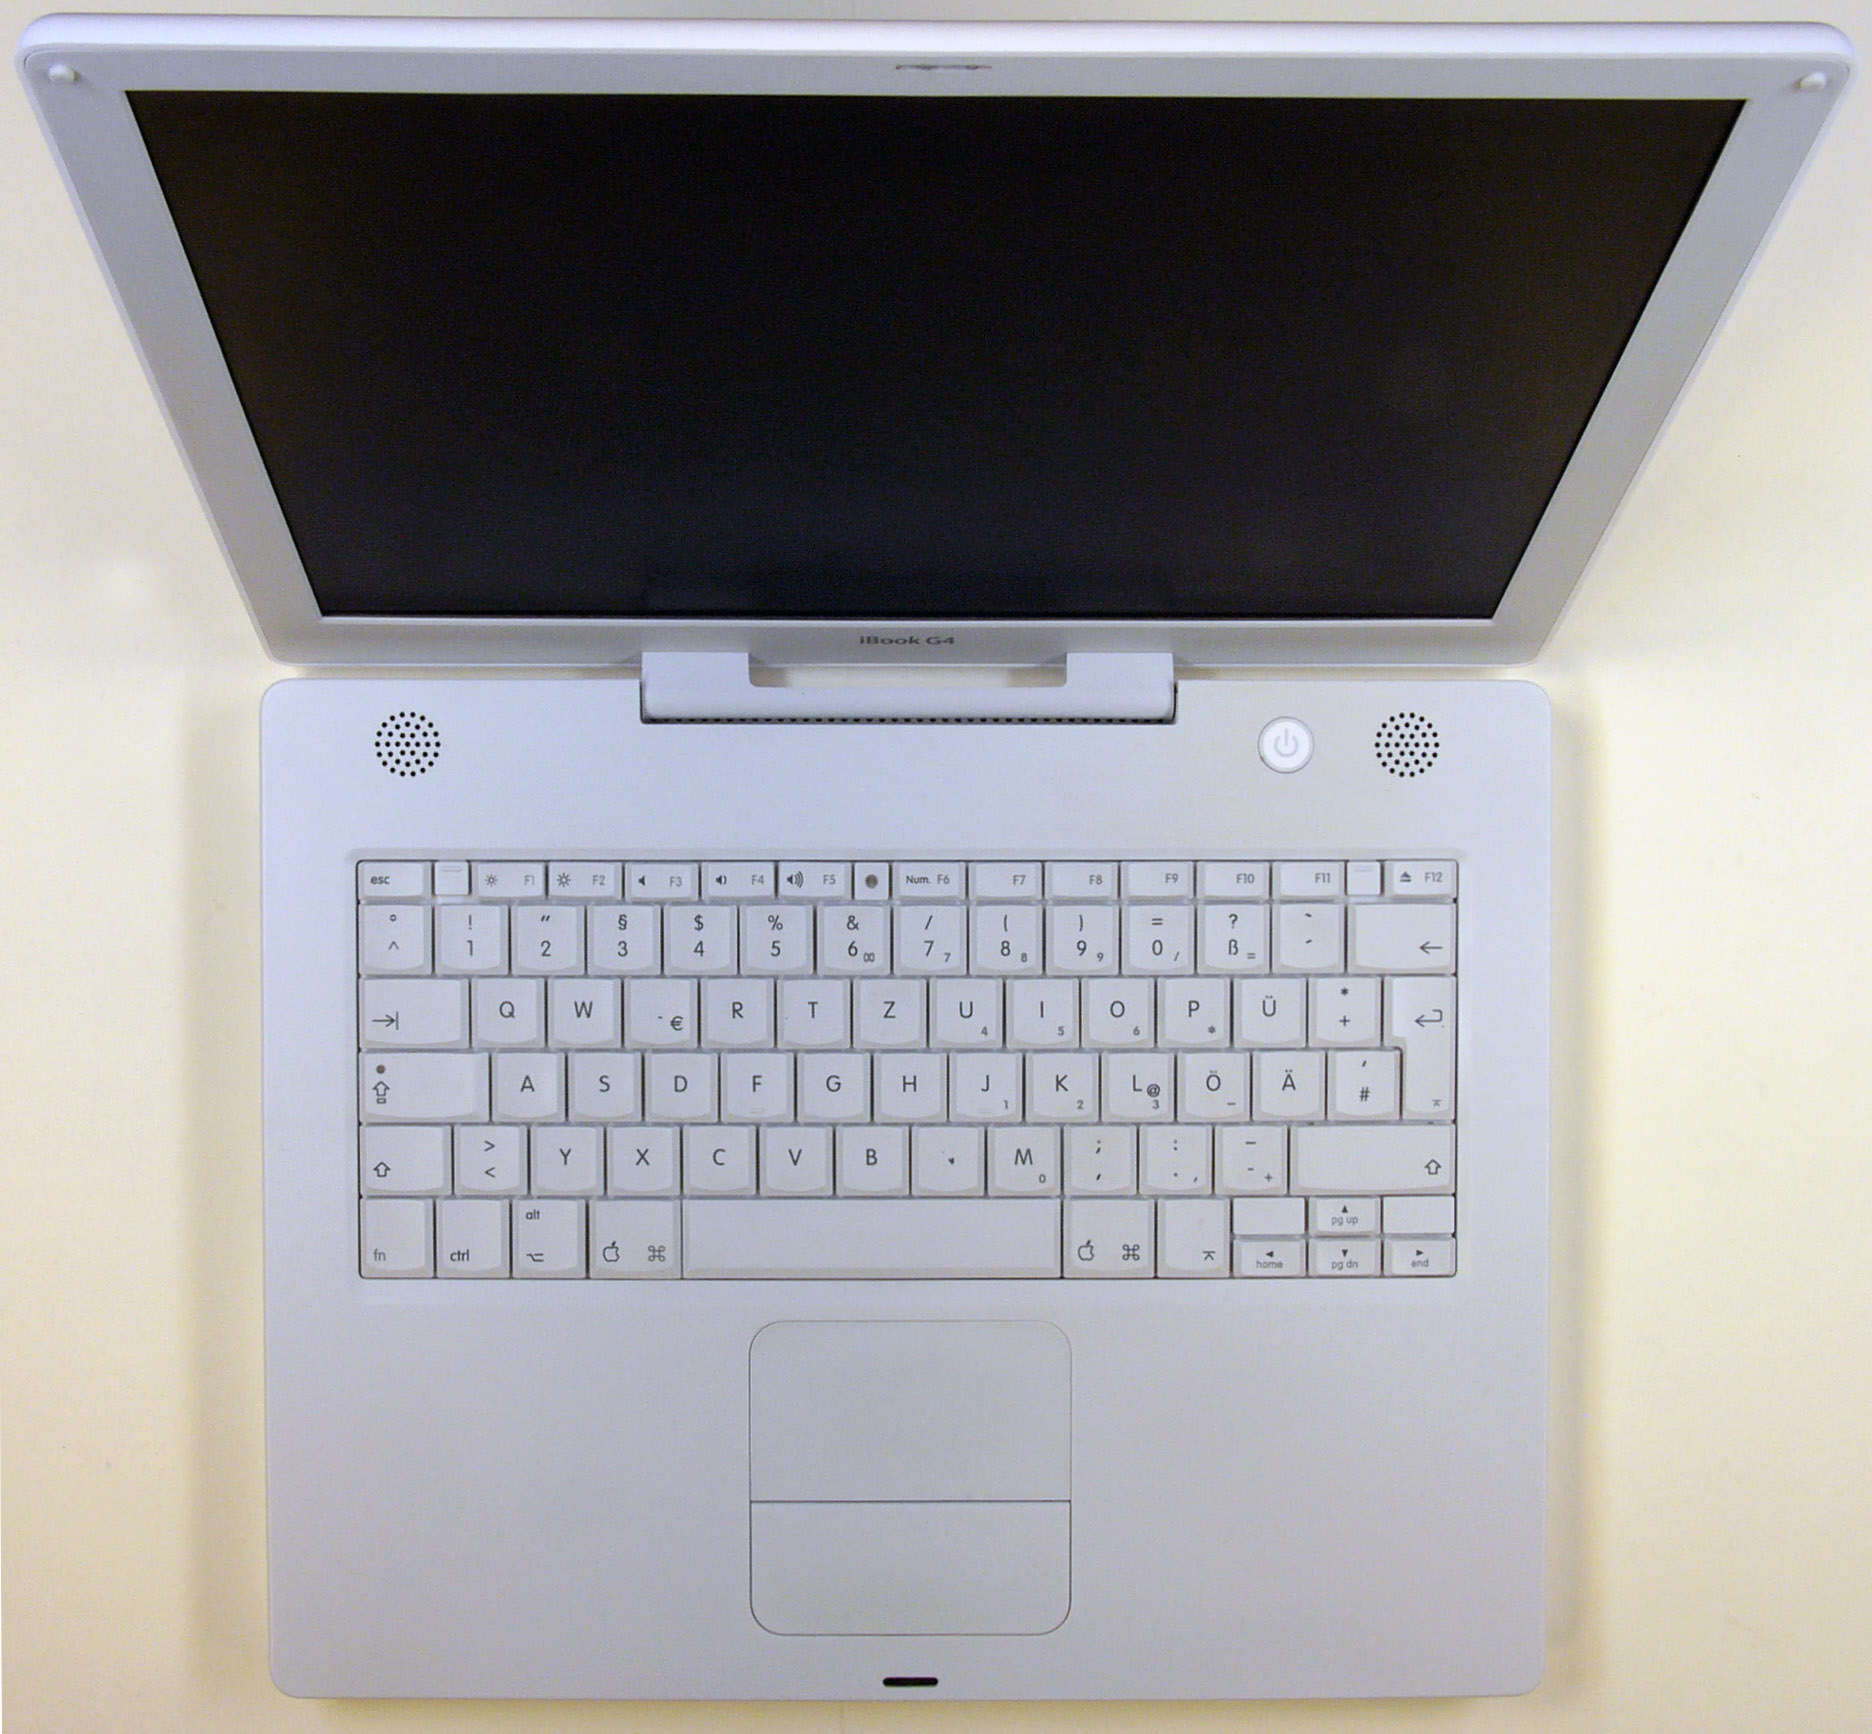 Rugged and pearly white, the iBook G4 becomes the last of its line.